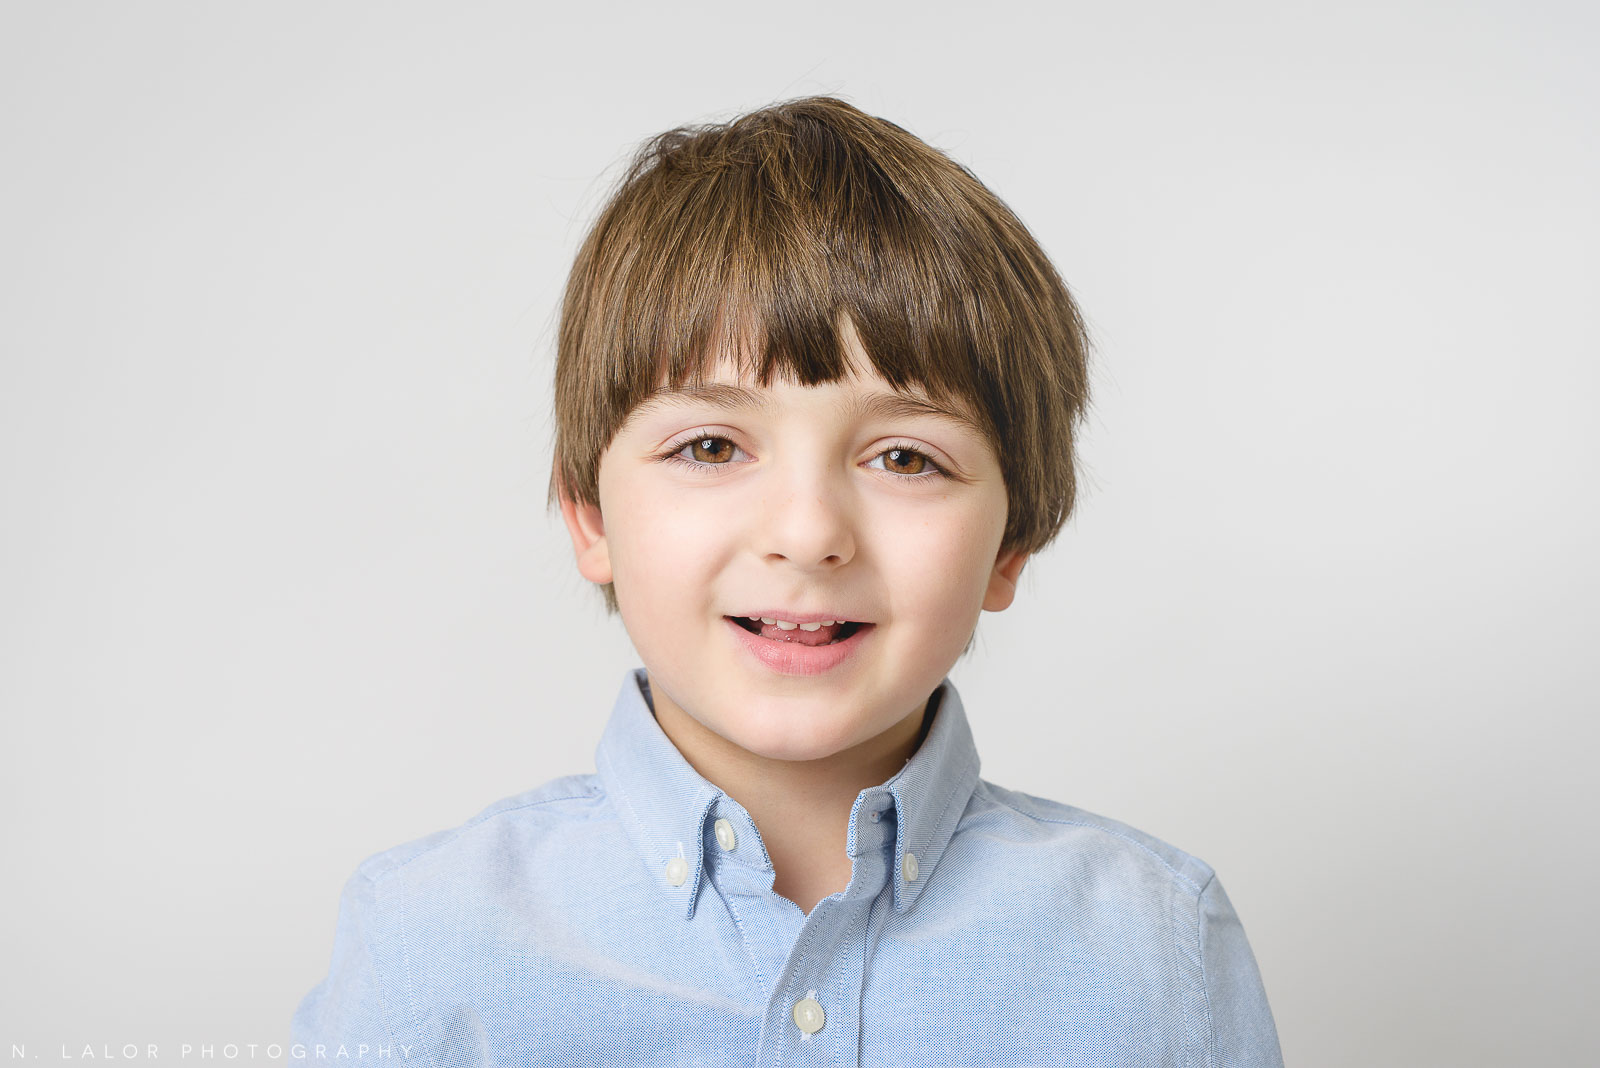 Image of a 5-year old boy smiling. Studio portrait by N. Lalor Photography in Greenwich, Connecticut.